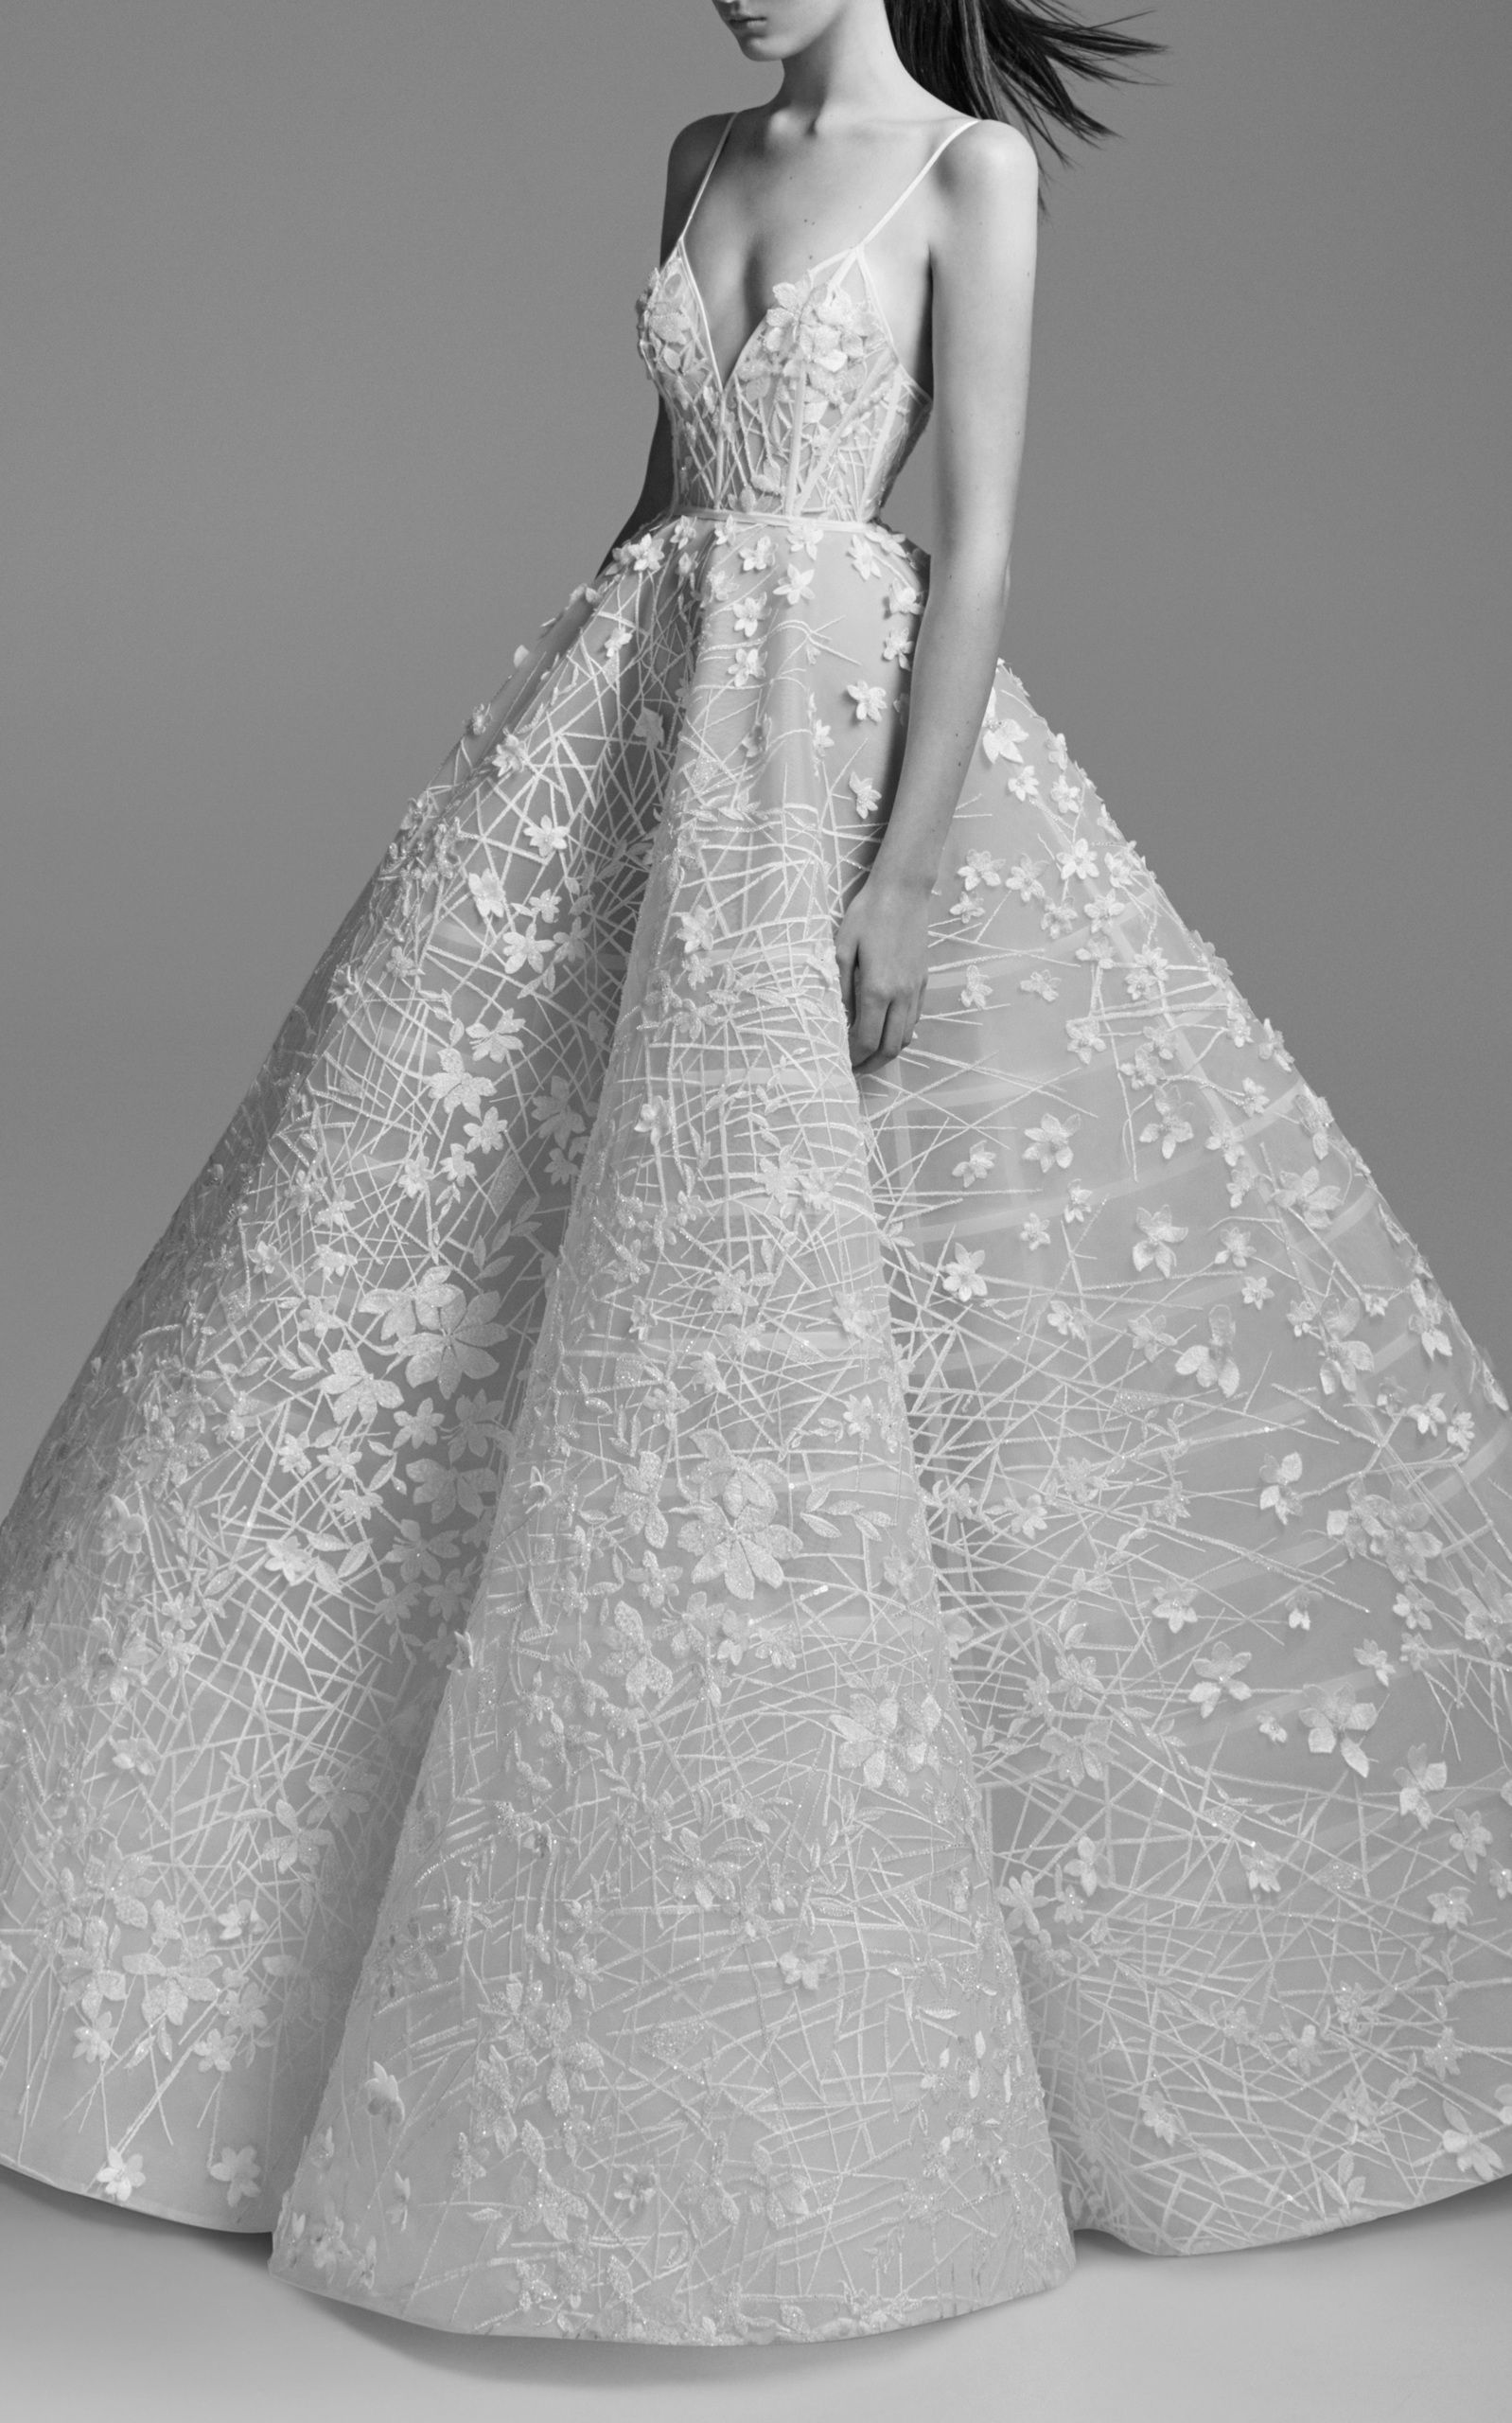 Alex Perry Bride Tatum Embellished Gown | Pinterest | Alex perry ...